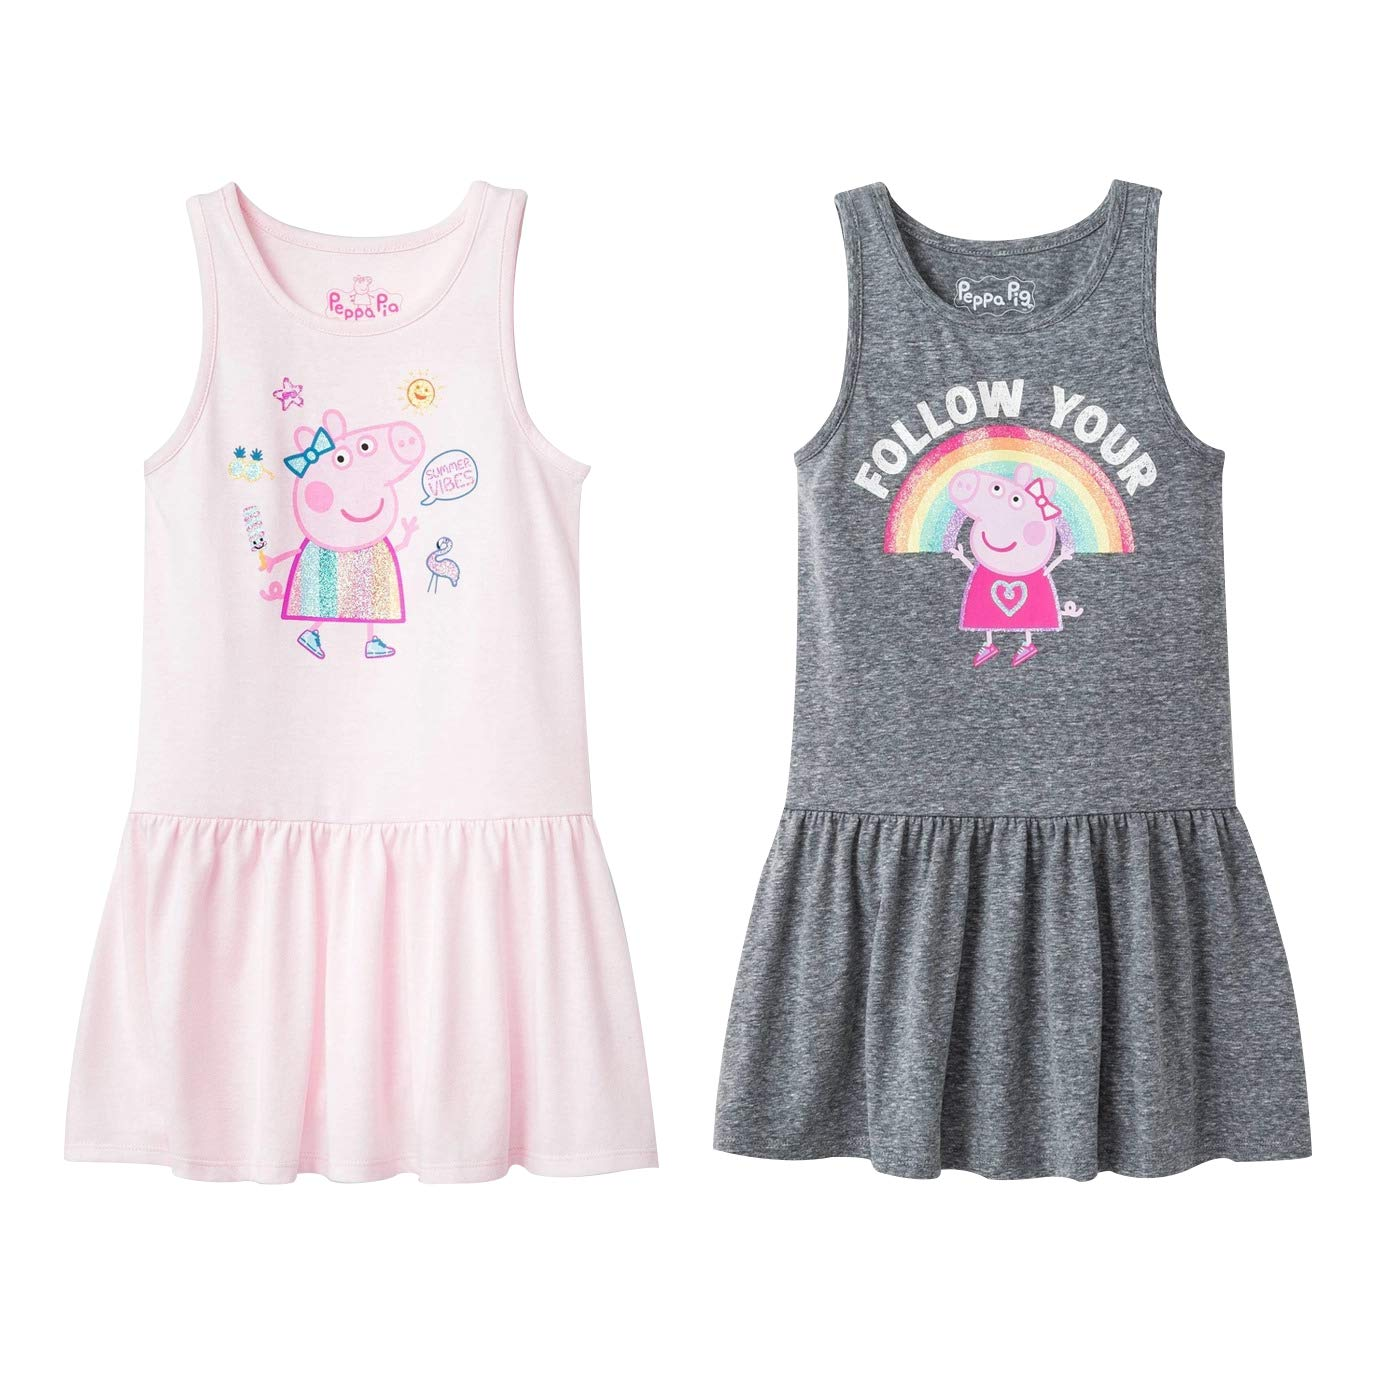 Peppa Pig Toddler Girls 2 Pack Graphic Jersey Dress Pink and Grey